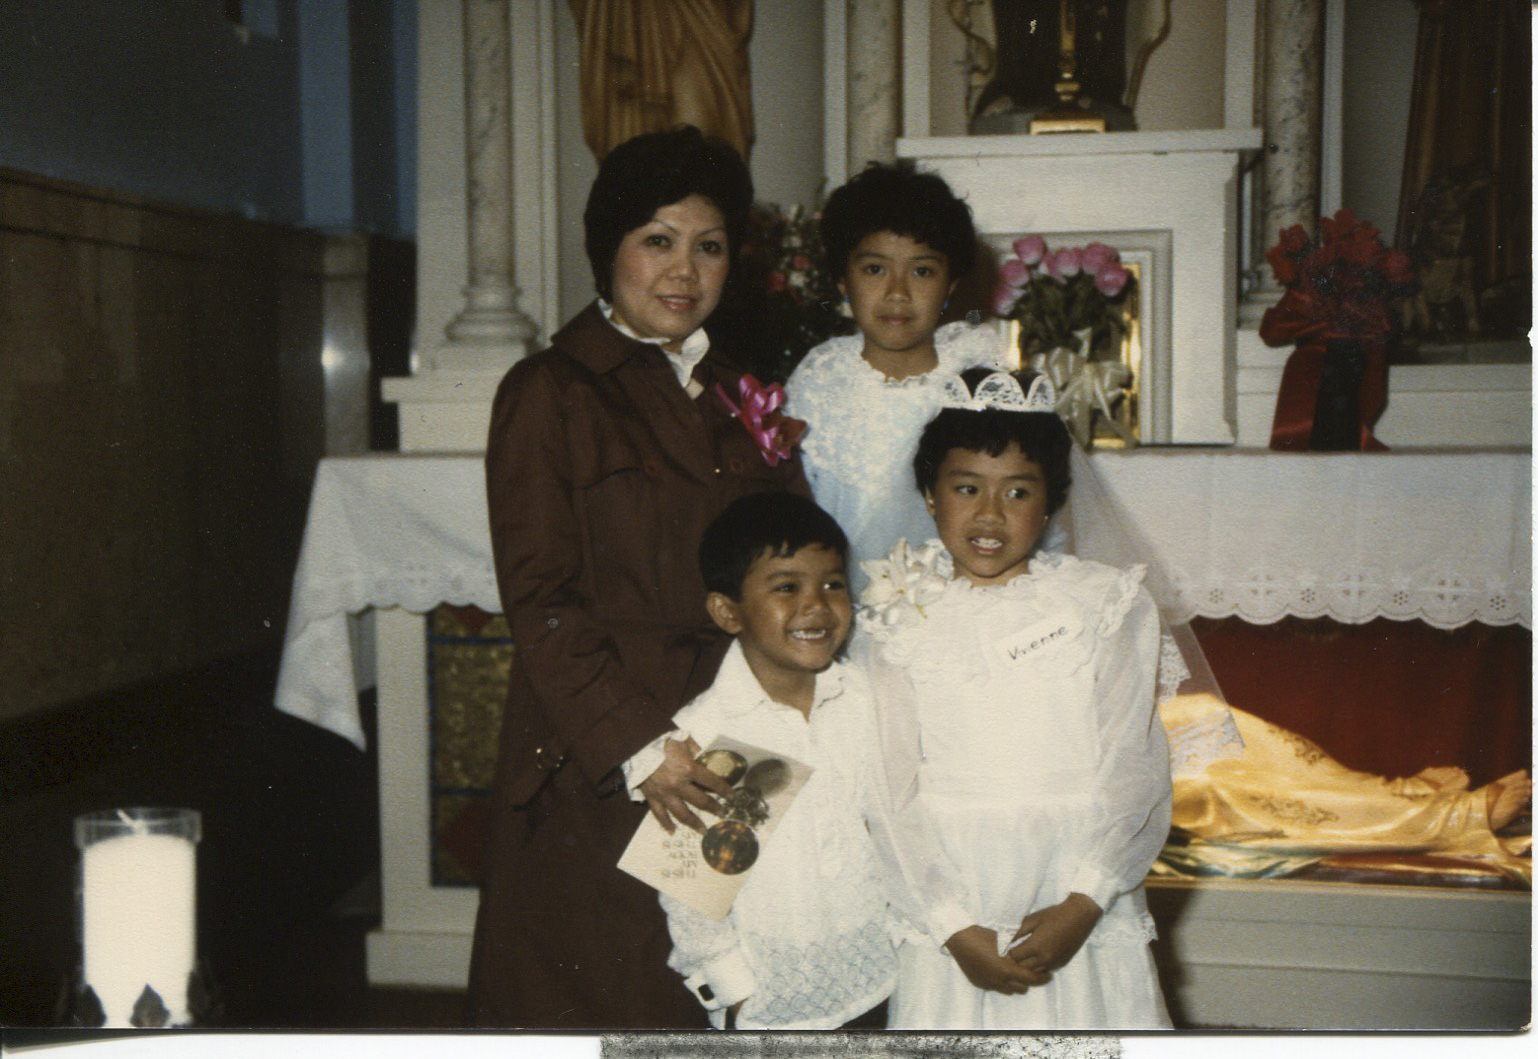 """Photo of Tan's family, 1987  Taken in Chicago at Our Lady of Pompeii Church, Lexington. The back of the photo says """"Please return to Necitas D. Tan class of 1963"""". Pictured: back row L-R: Necitas, daughter Simonette. Back row: son Jason, daughter Vivienne. Tan said the photo, """"shows the beginning of my life."""" Tan said the photo shows her family and represents the transition from being single to being married with a family in America. Tan's husband (Cesary Tan) is taking the photo. Tan is an orphan; her father died in WWII. She took an exam and passed it to get into school. All Tan's children are grown. Her daughter is married and has two kids in San Diego. Tan's daughter Simonette is the manager of an investment company. Her daughter Vivienne is a graphic designer. Her son Jason an electronic engineer.   Any views, findings, conclusions, or recommendations expressed in this story do not necessarily represent those of the National Endowment for the Humanities. [Copyright] Field Museum of Natural History - CC BY-NC"""